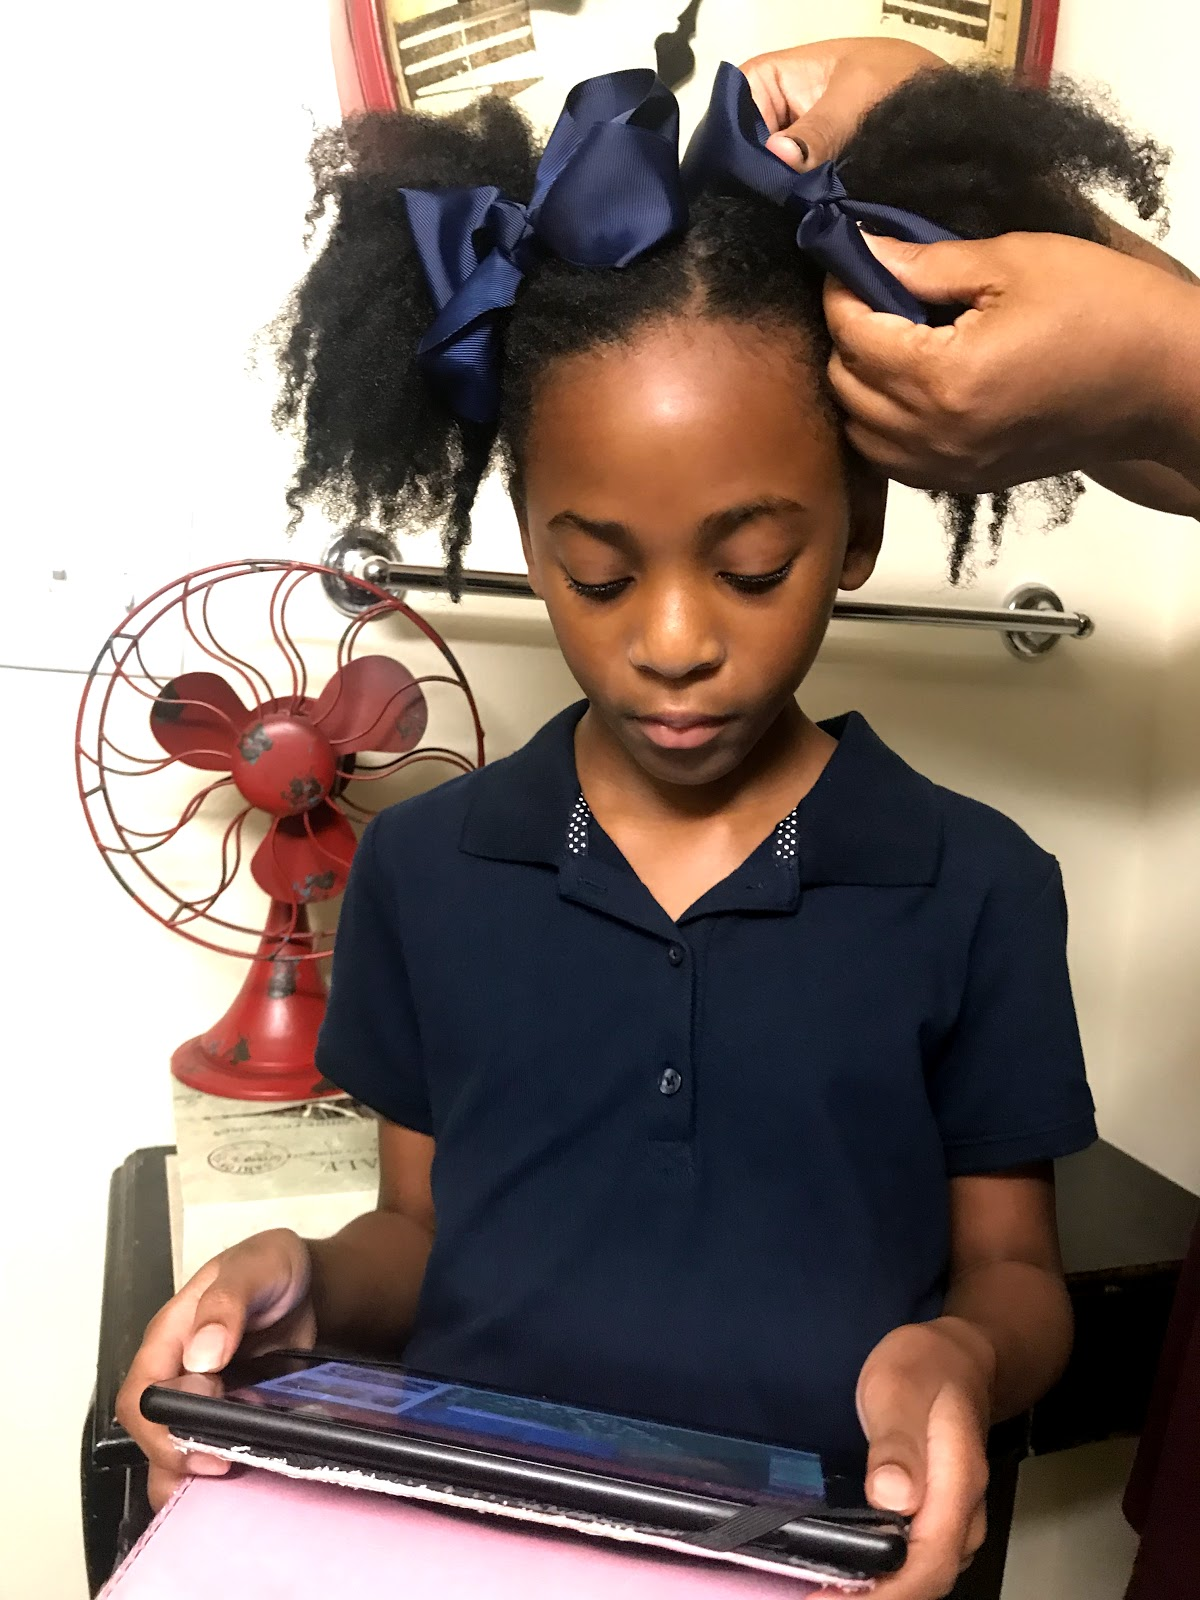 Image: Tangie Bell combing her daughters hair as part of her school morning routine